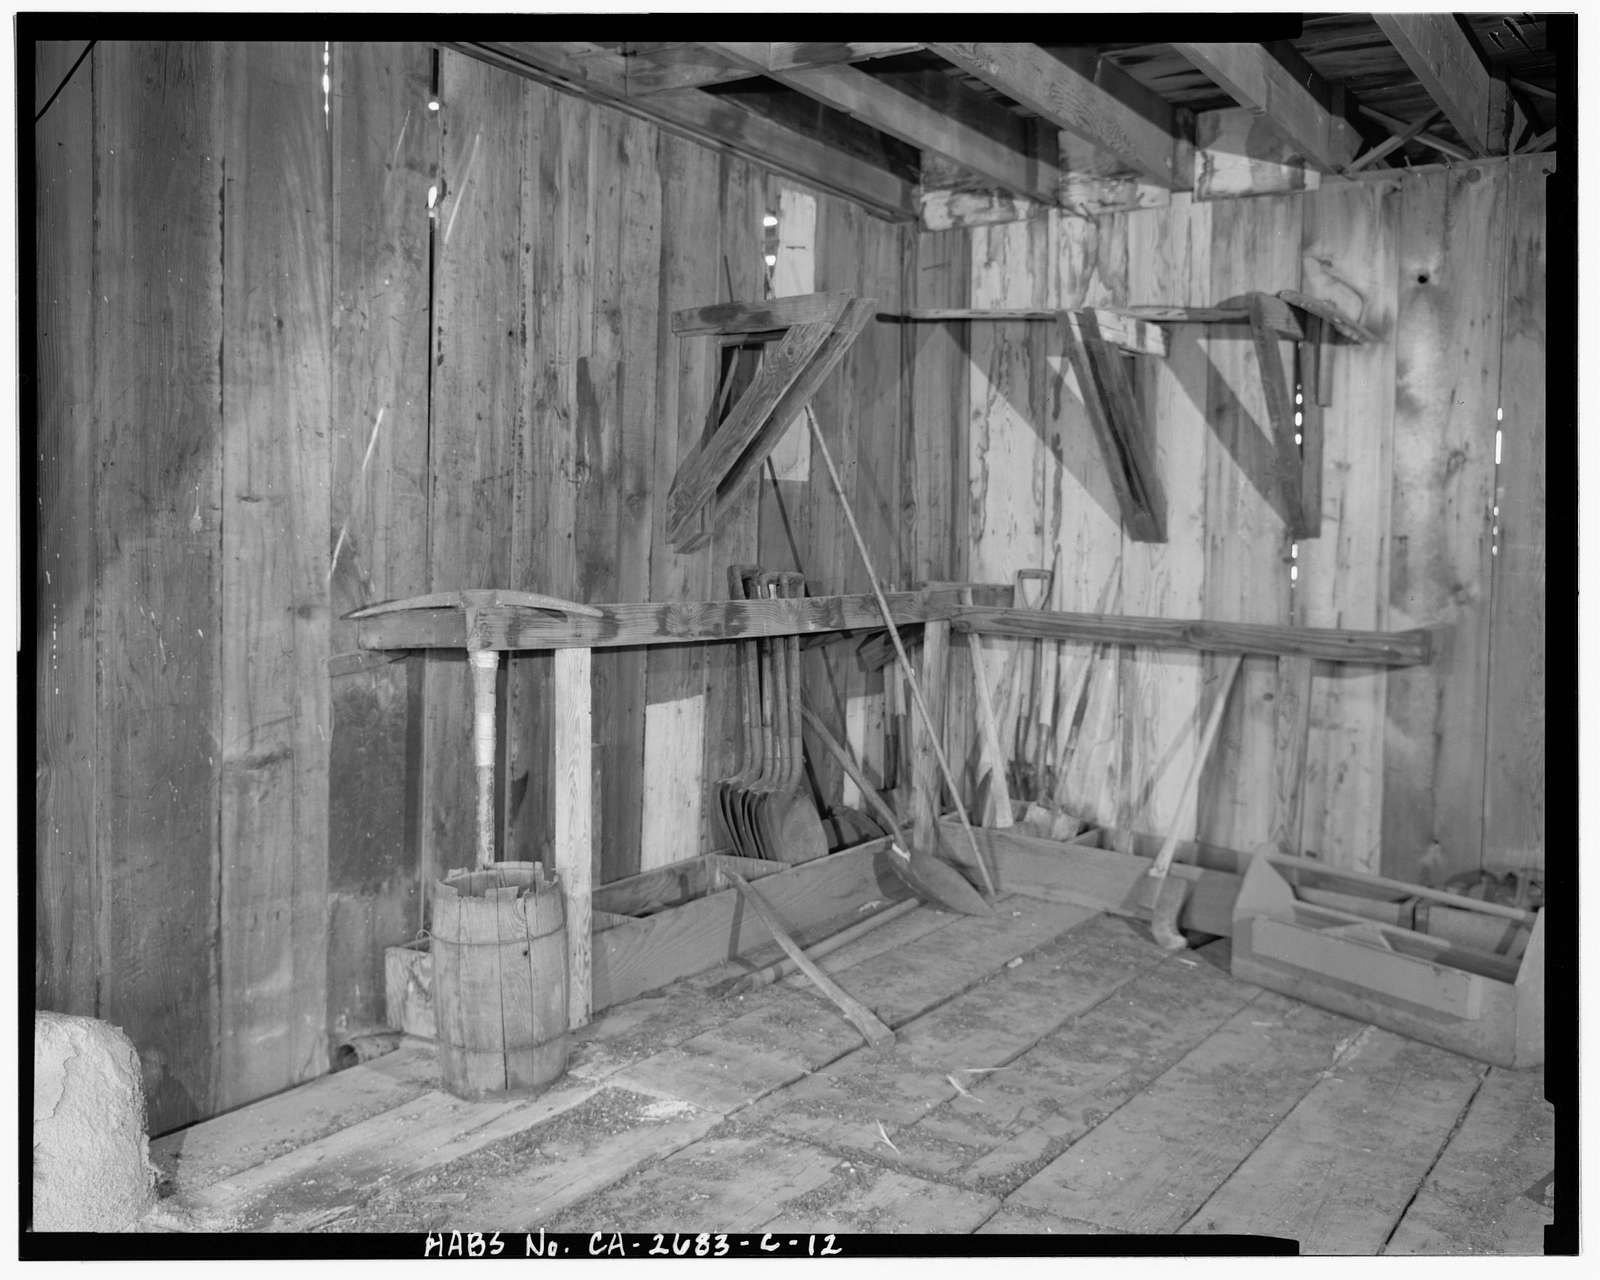 Camp Tulelake, Shop-Storage Building, West Side of Hill Road, 2 miles South of State Highway 161, Tulelake, Siskiyou County, CA